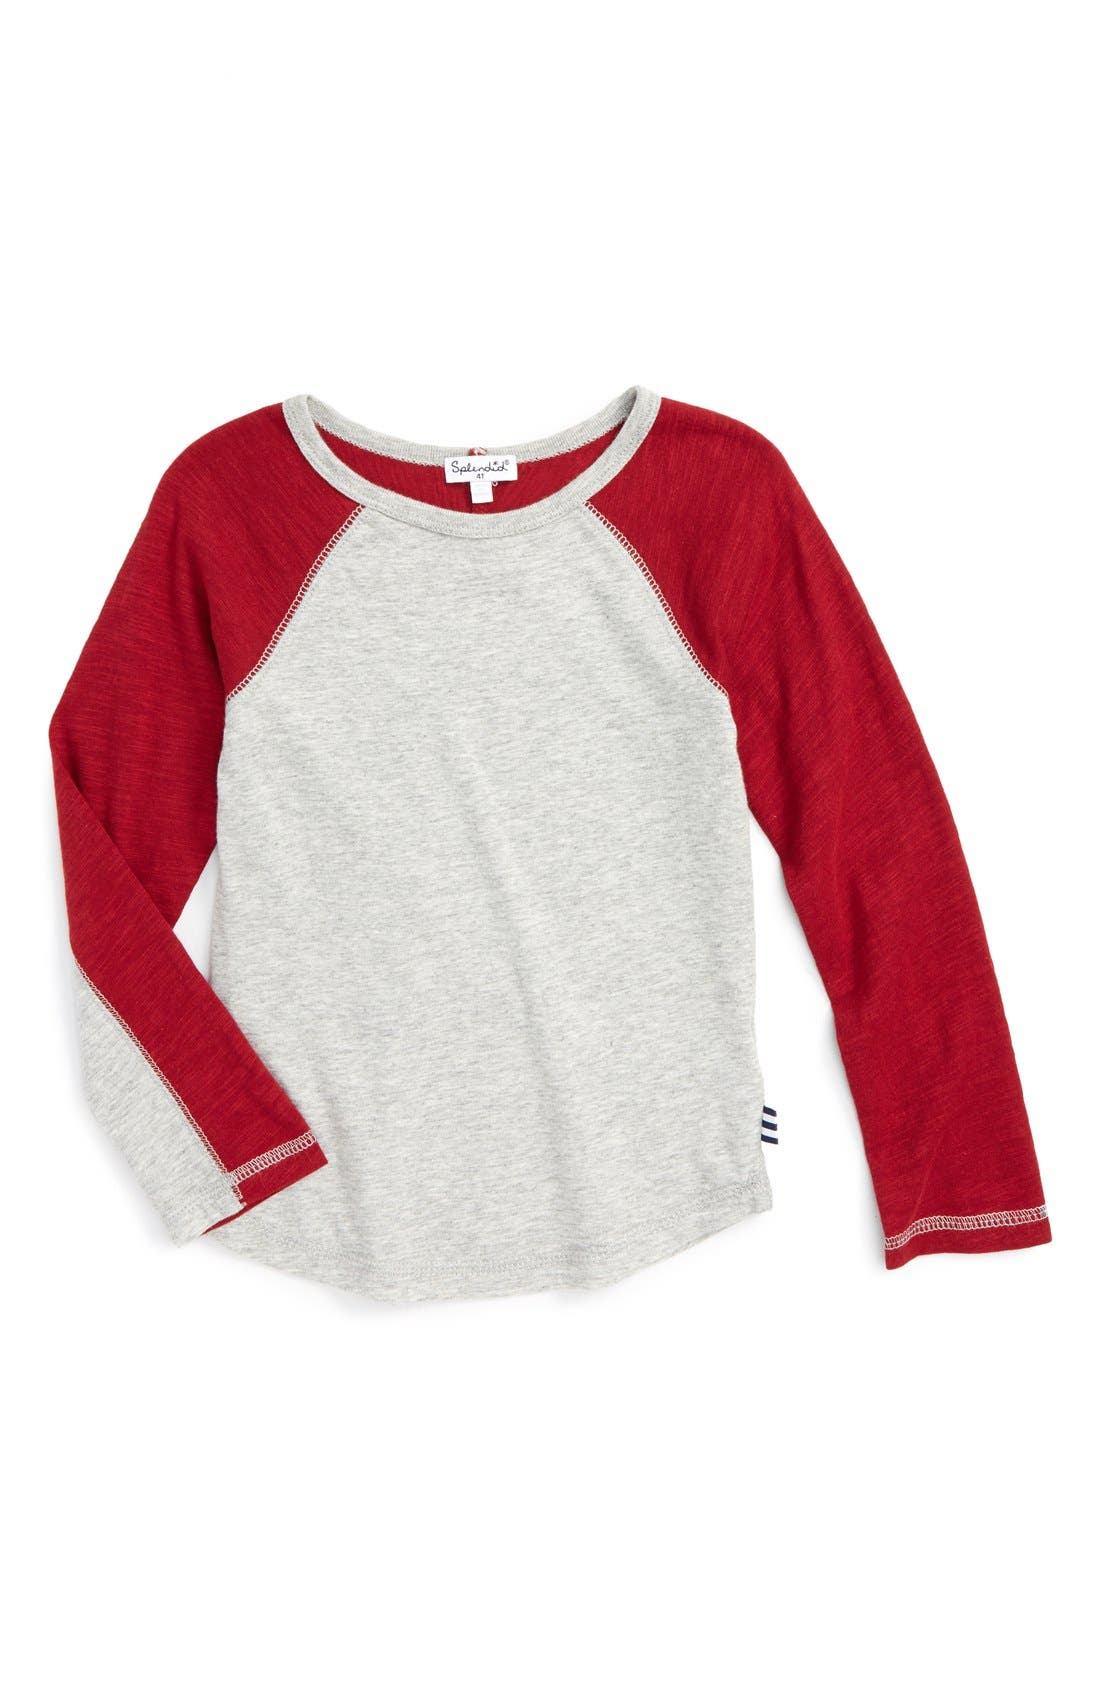 Alternate Image 1 Selected - Splendid Slub Knit T-Shirt (Toddler Boys & Little Boys)